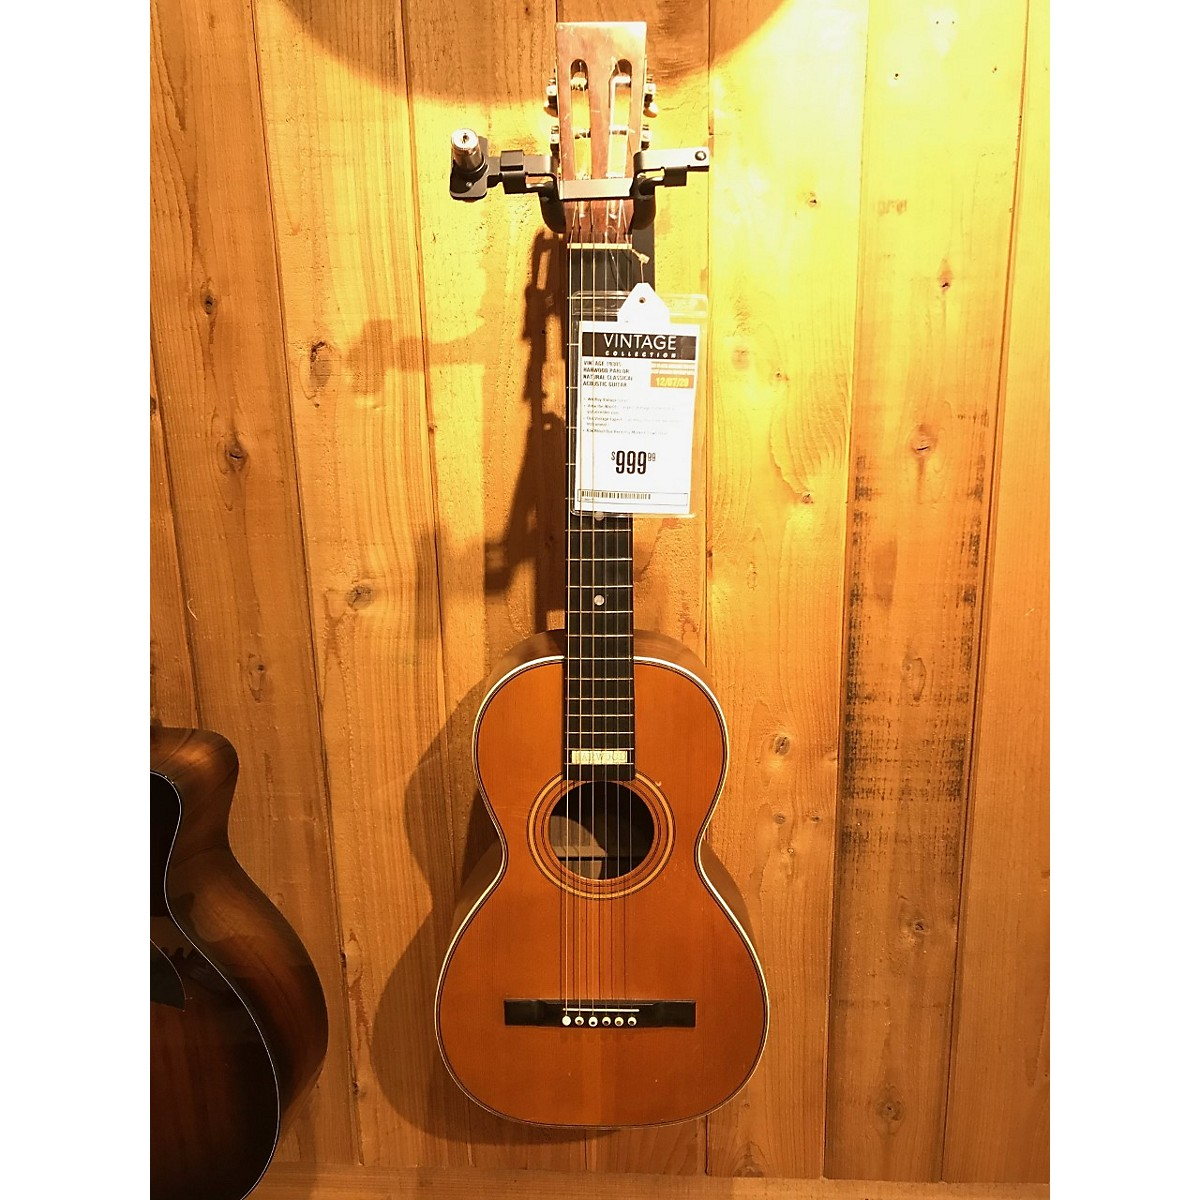 In Store Vintage Vintage 1930s Harwood Parlor Natural Classical Acoustic Guitar